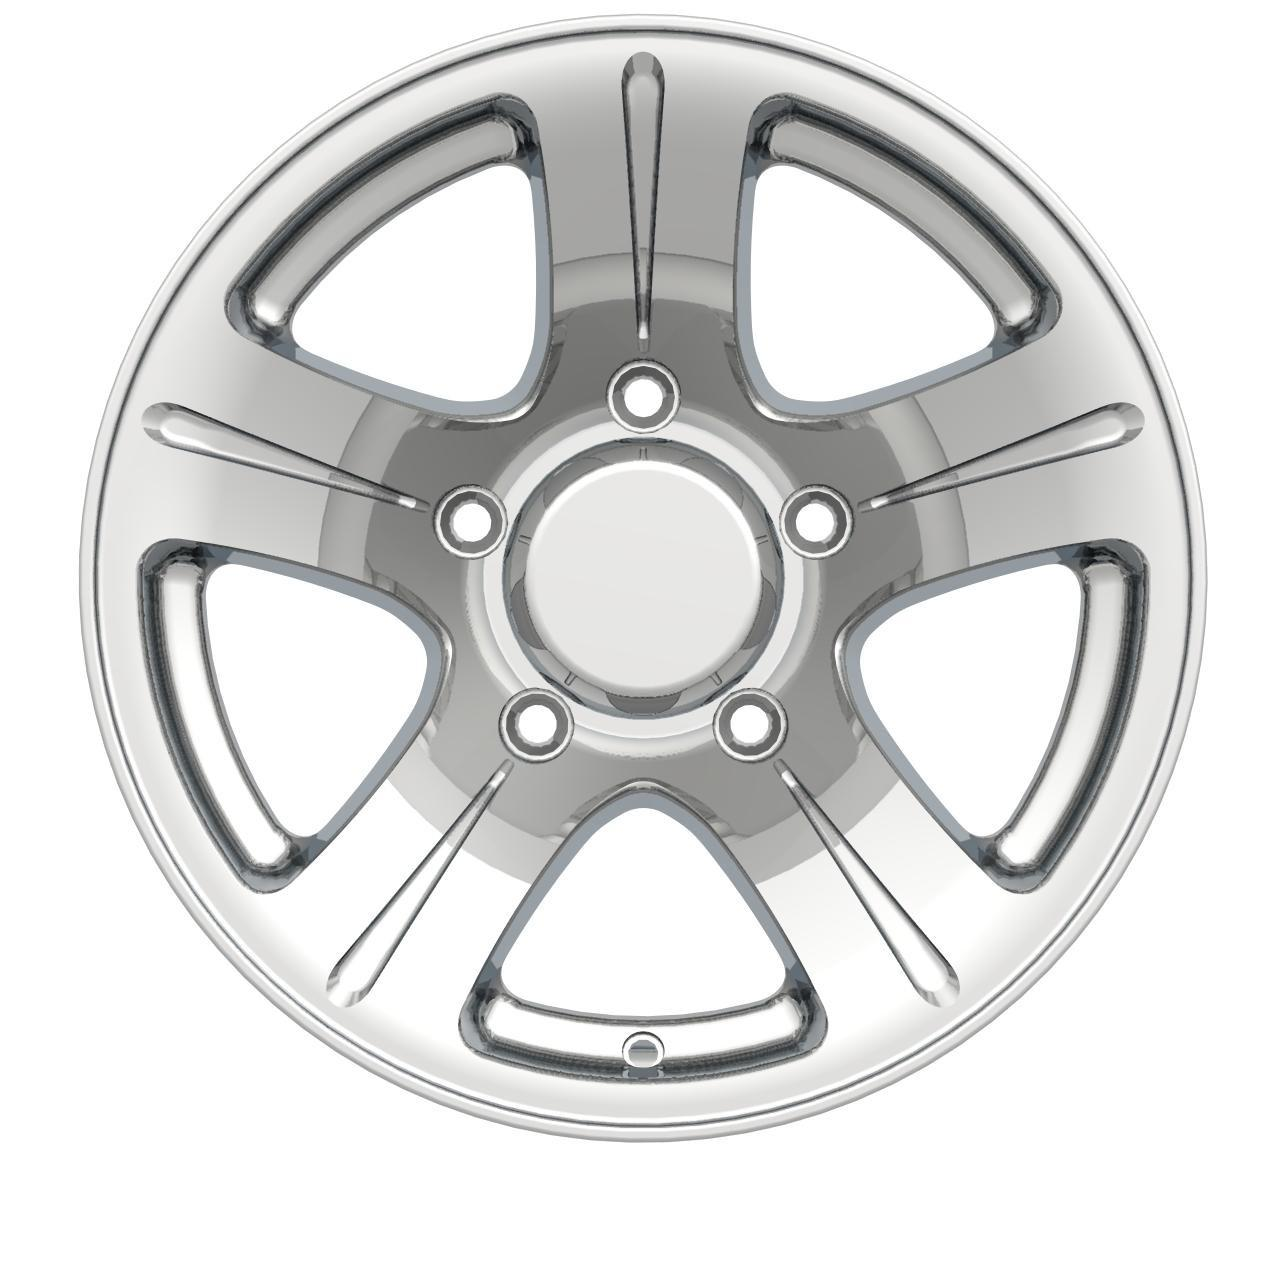 Quality 15x8 Vehicle Wheels, 15 Inch Alloy Wheels 5 Hole 111 CB for sale